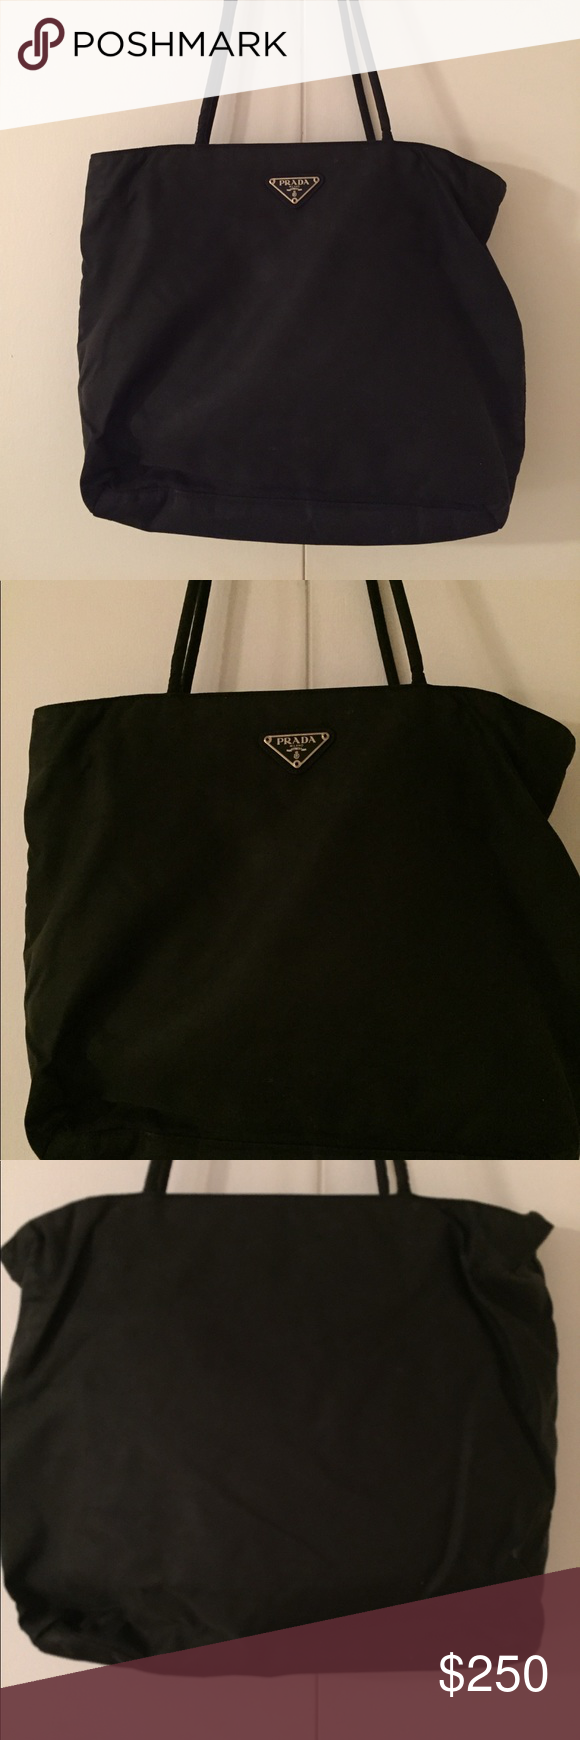 fc7d76330f28 ... purchase authentic prada nylon purse authentic nylon prada tote.  vintage prada black nylon shoulder bag